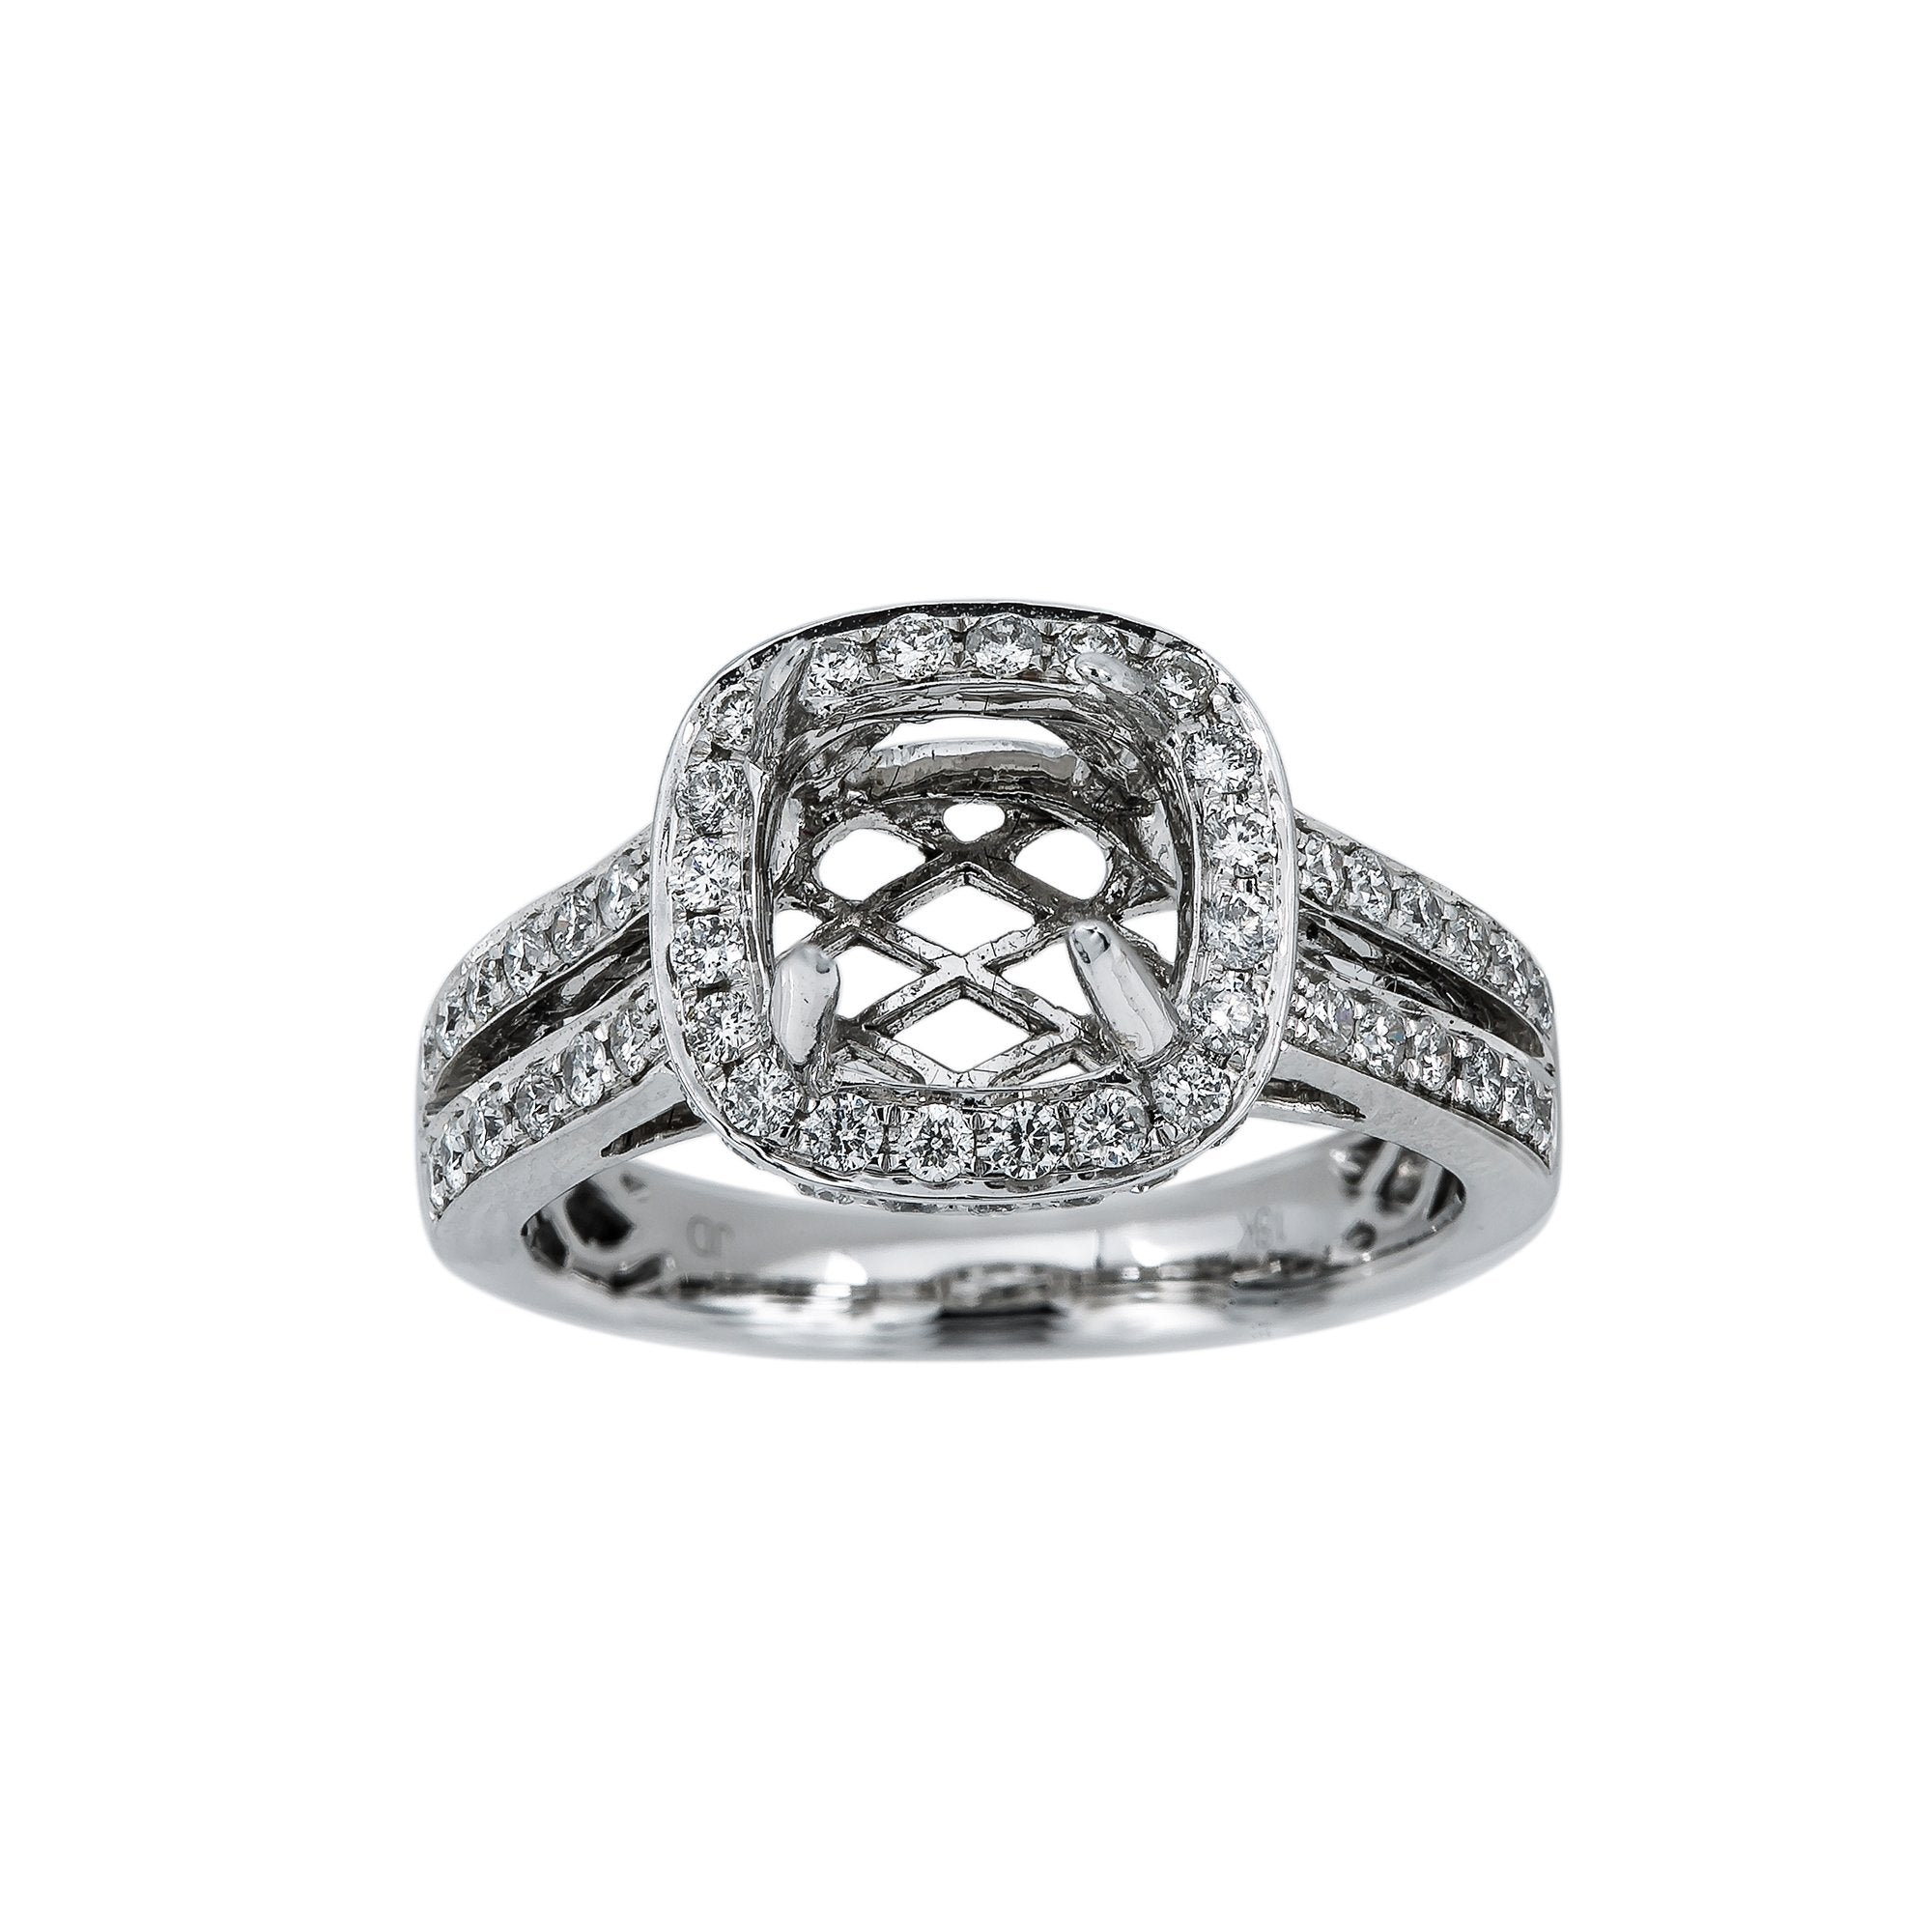 18K White Gold RR0649 Women's Ring With 0.85 CT Diamonds